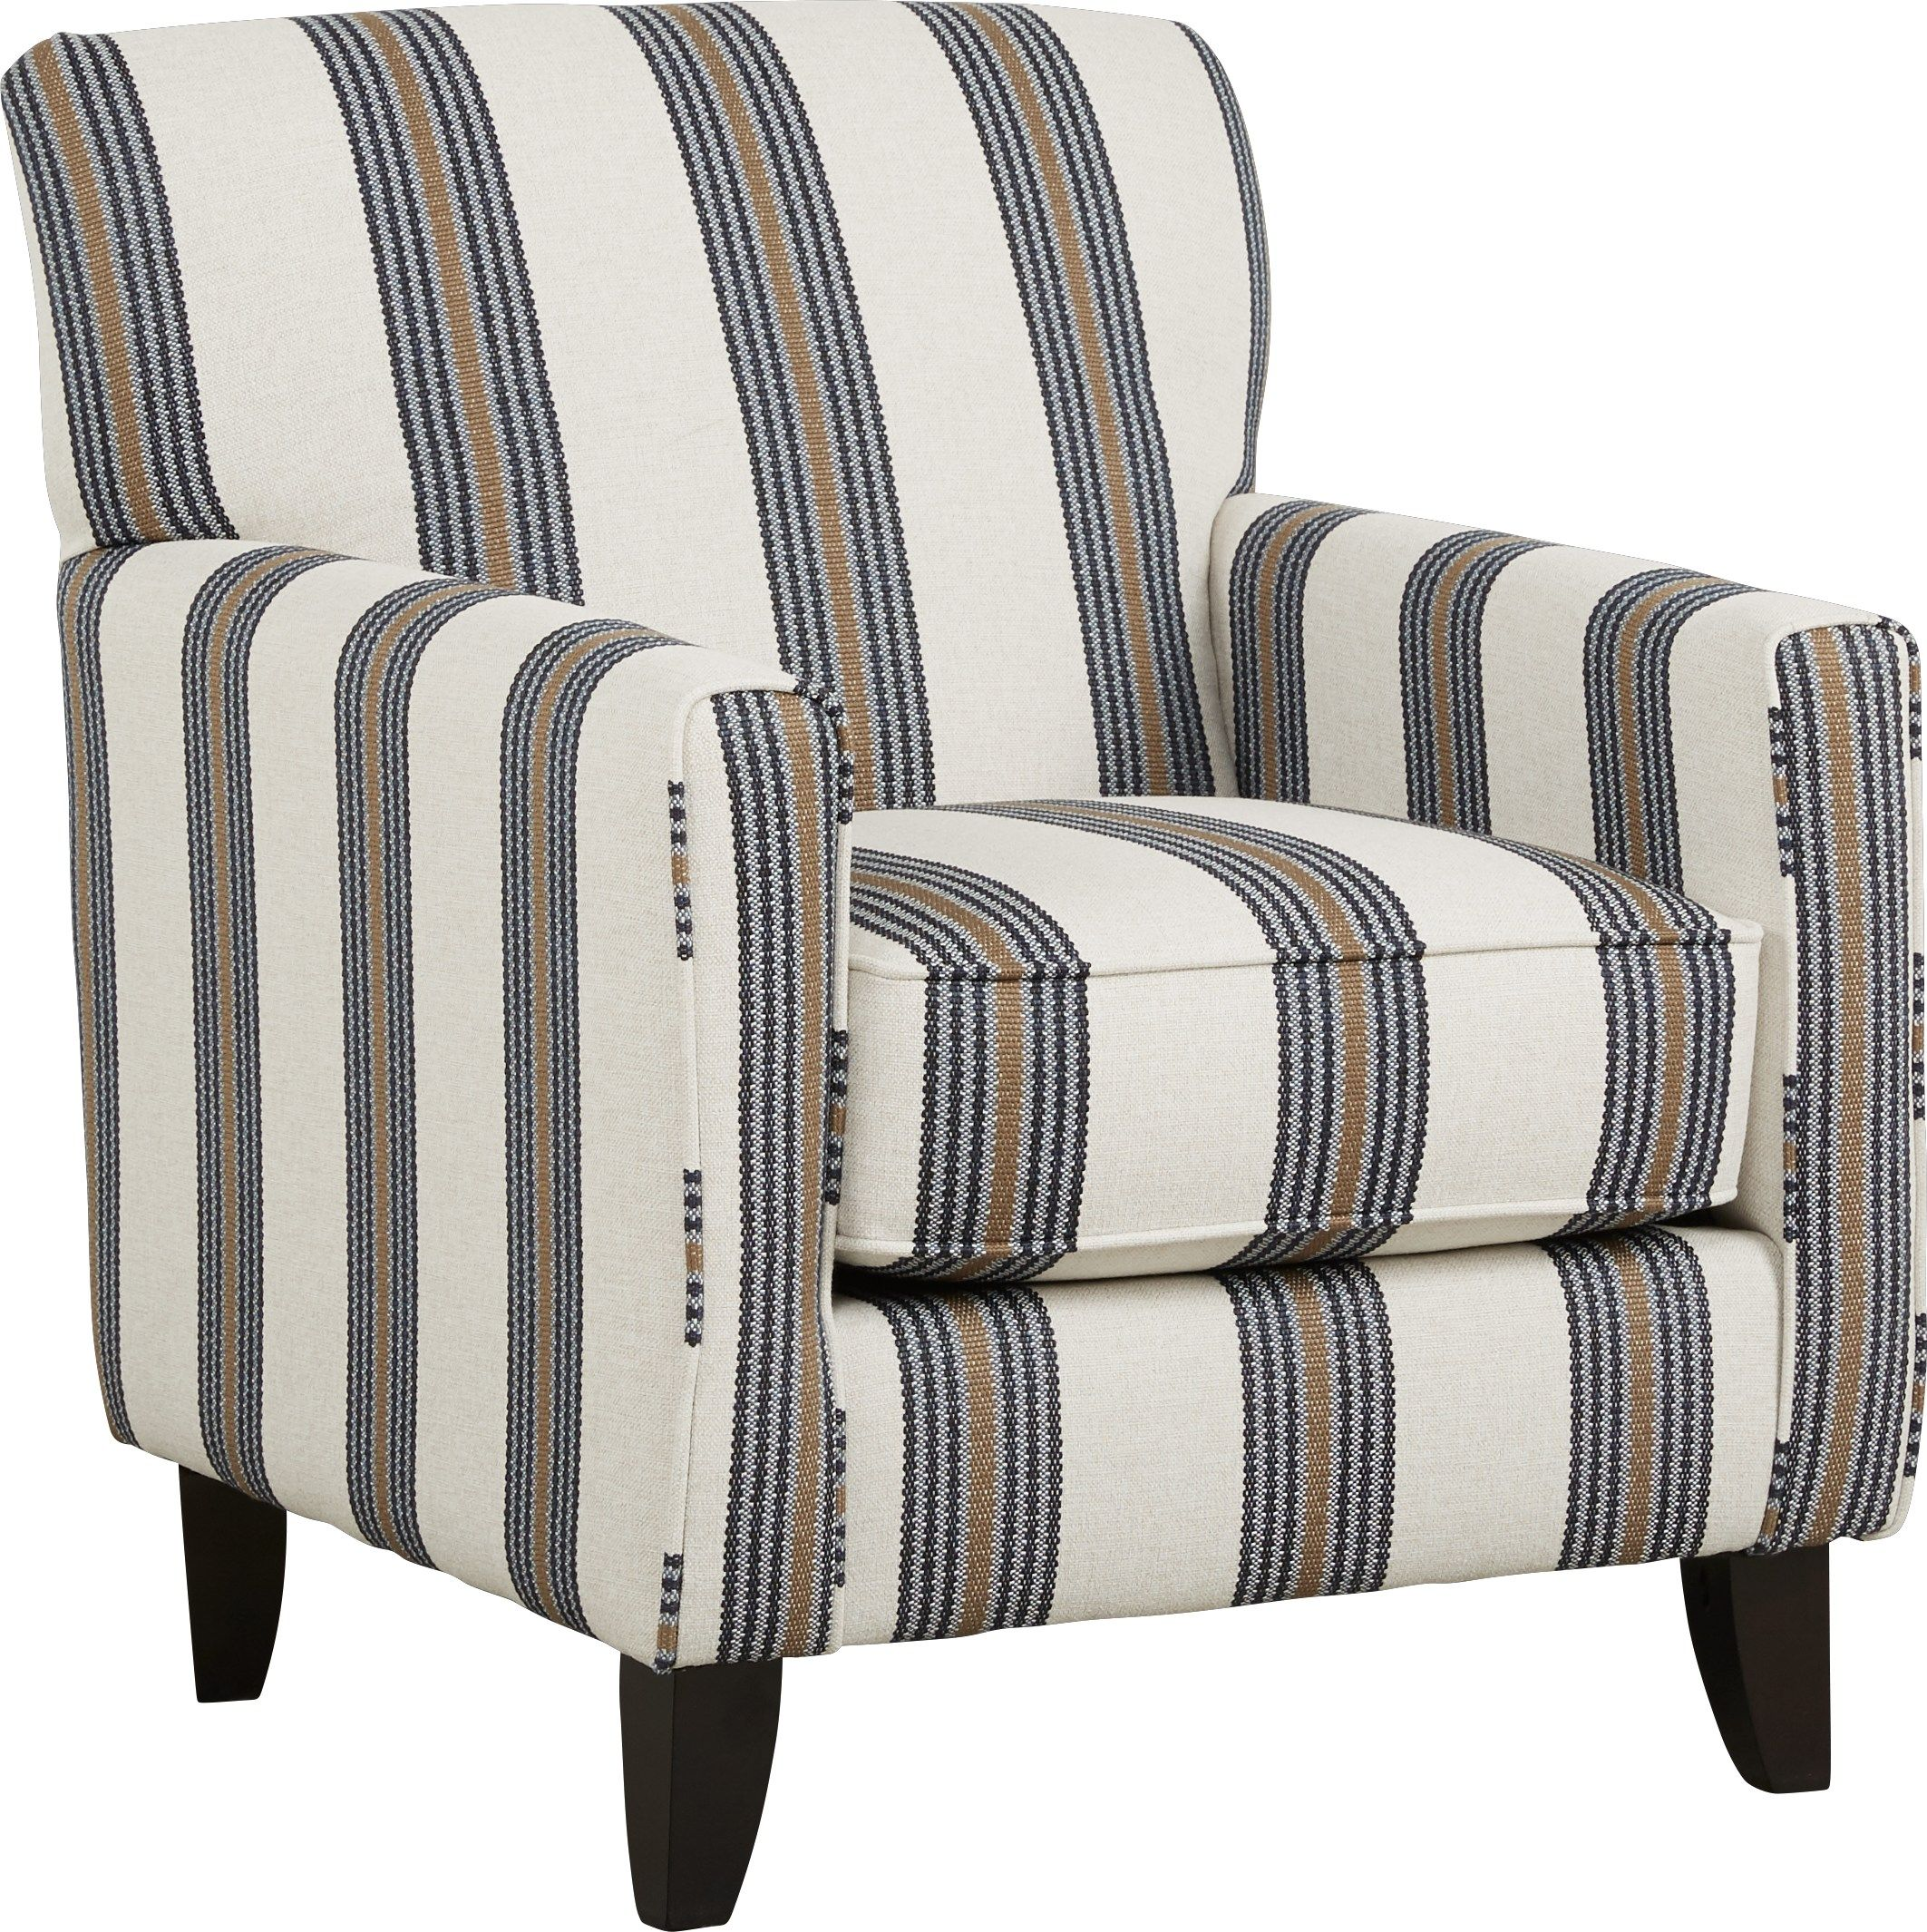 Roomstogo Briarcrest Beige Accent Chair 355 0 30w X 32d X 38h